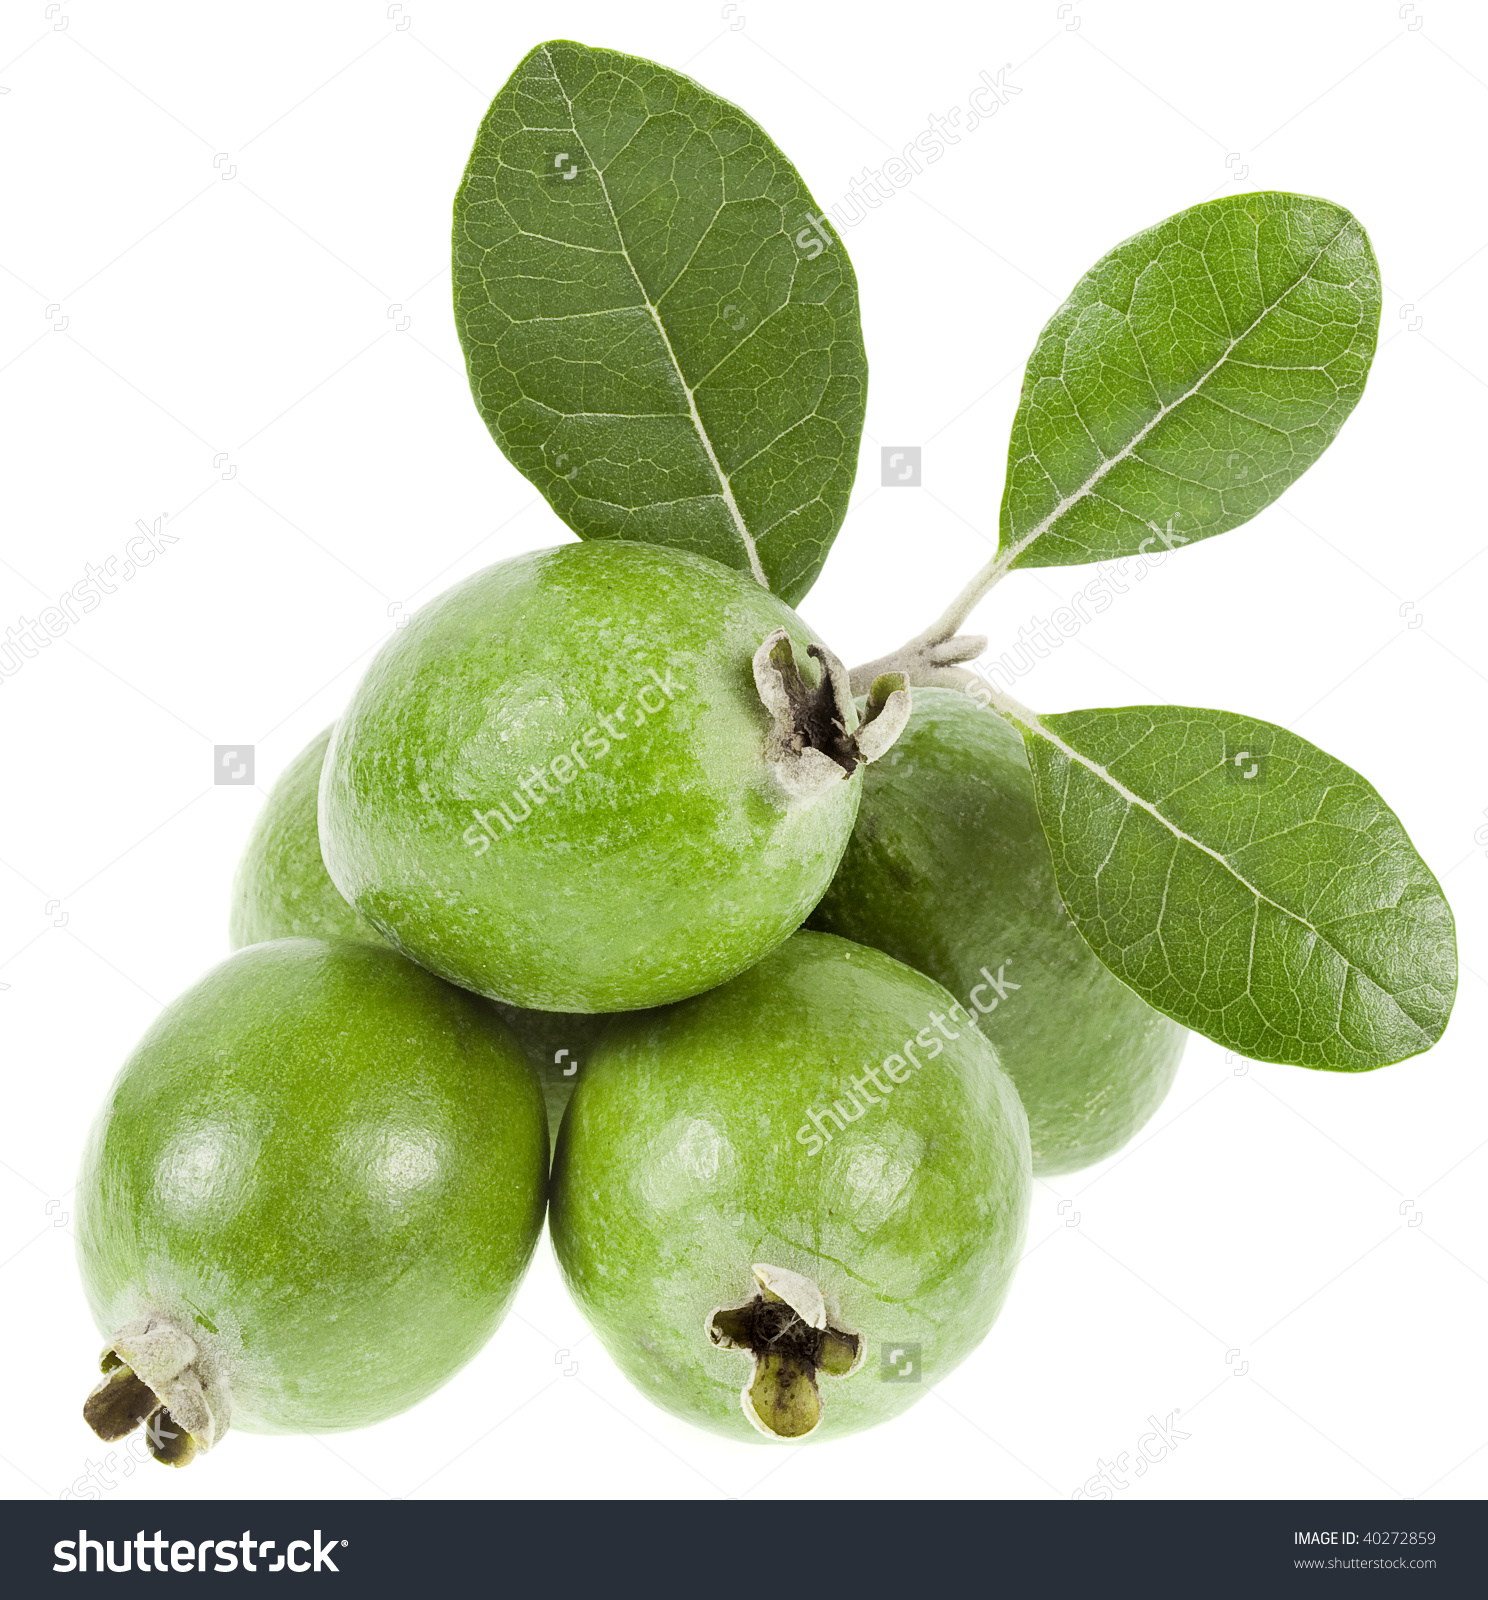 Feijoa Fruit Acca Sellowiana Leaves Heap Stock Photo 40272859.